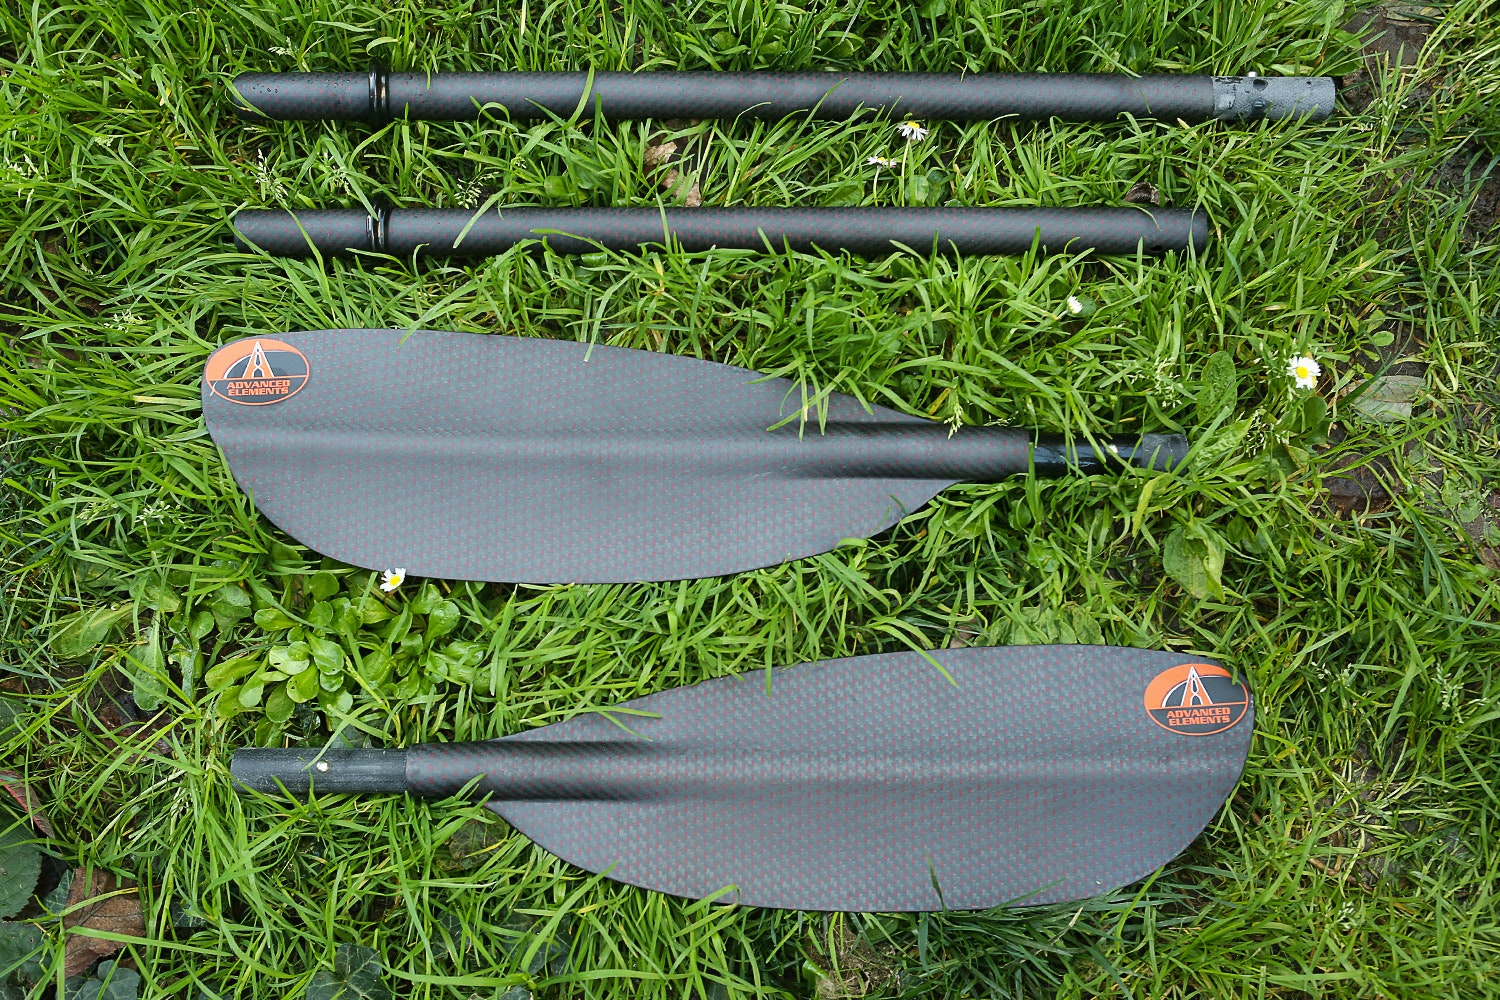 Advanced Elements Touring Full-Carbon 4-Part Paddle